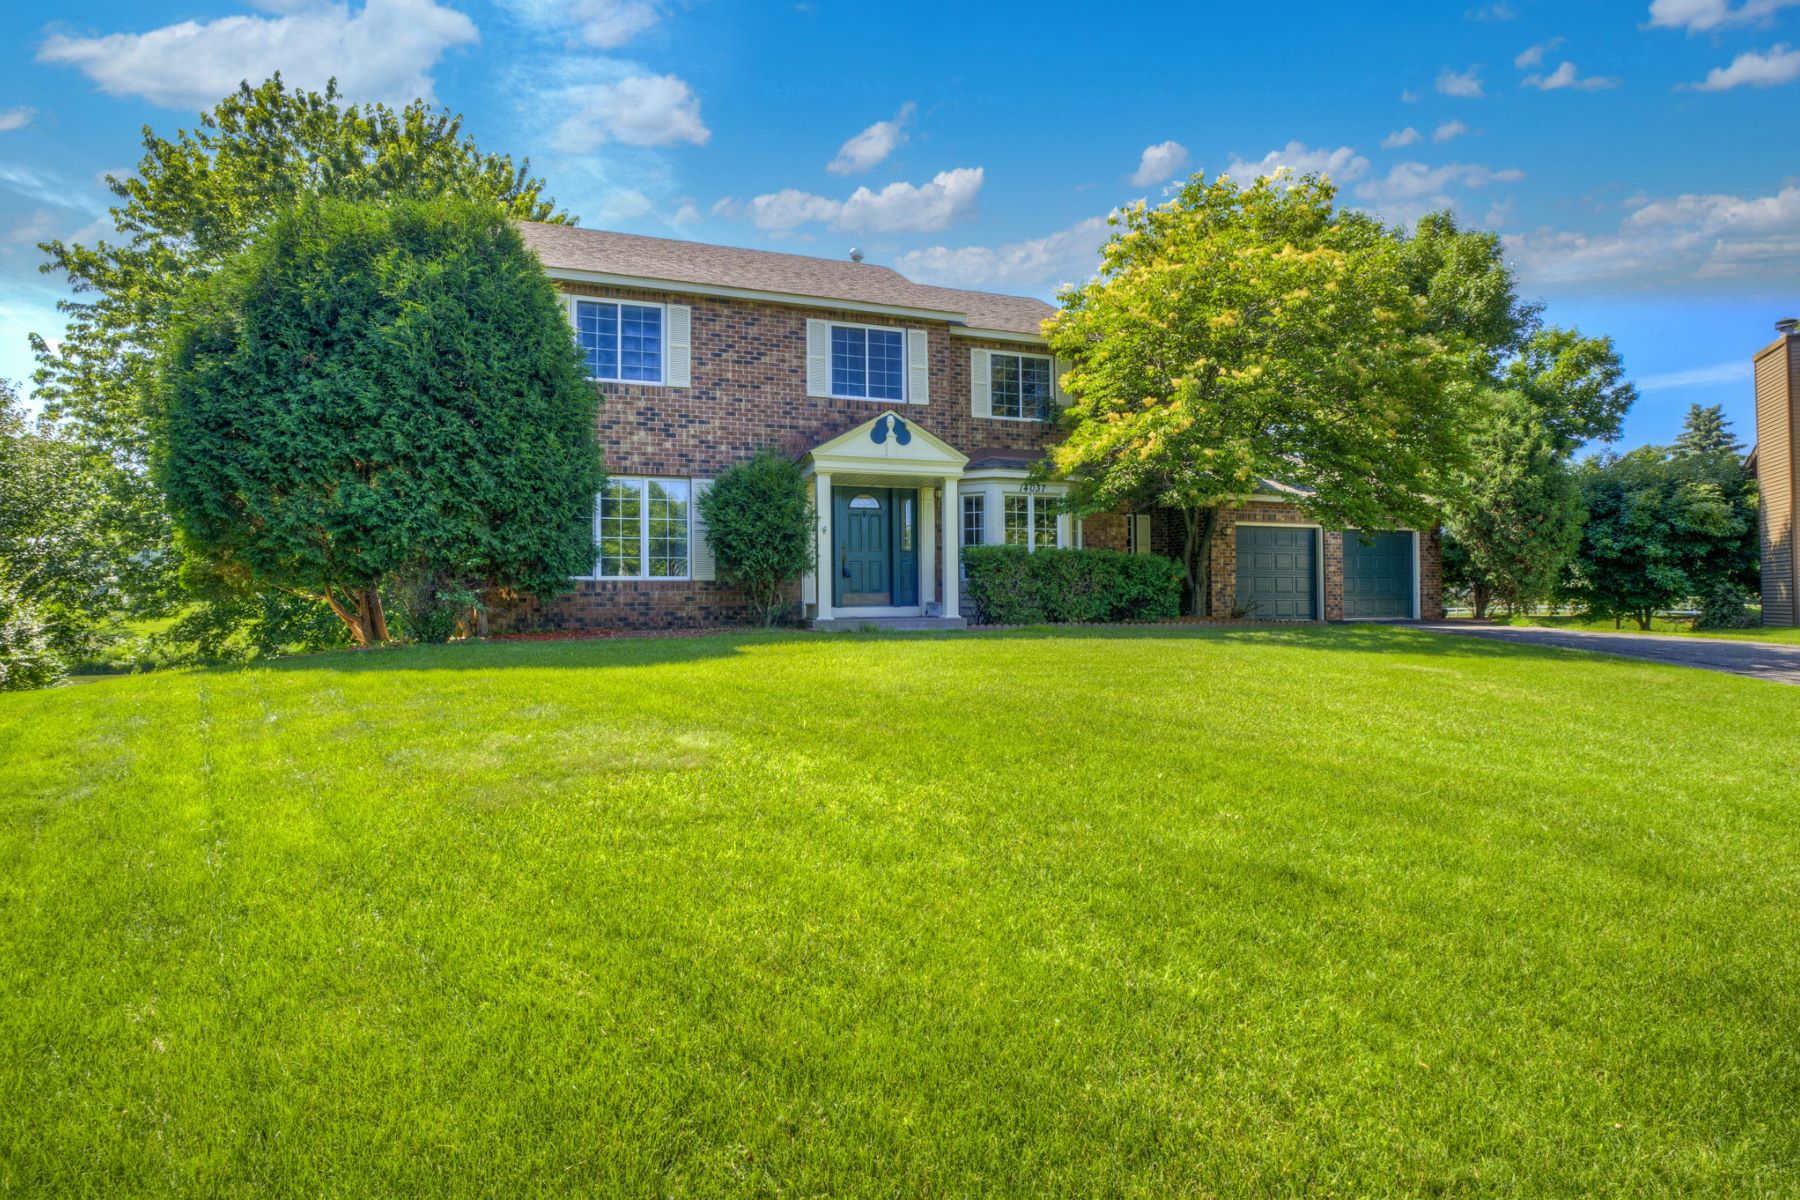 Single Family Homes for Sale at Beautiful brick front two story Colonial in desired Country Hills neighborhood. 14037 Daytona Way Rosemount, Minnesota 55068 United States